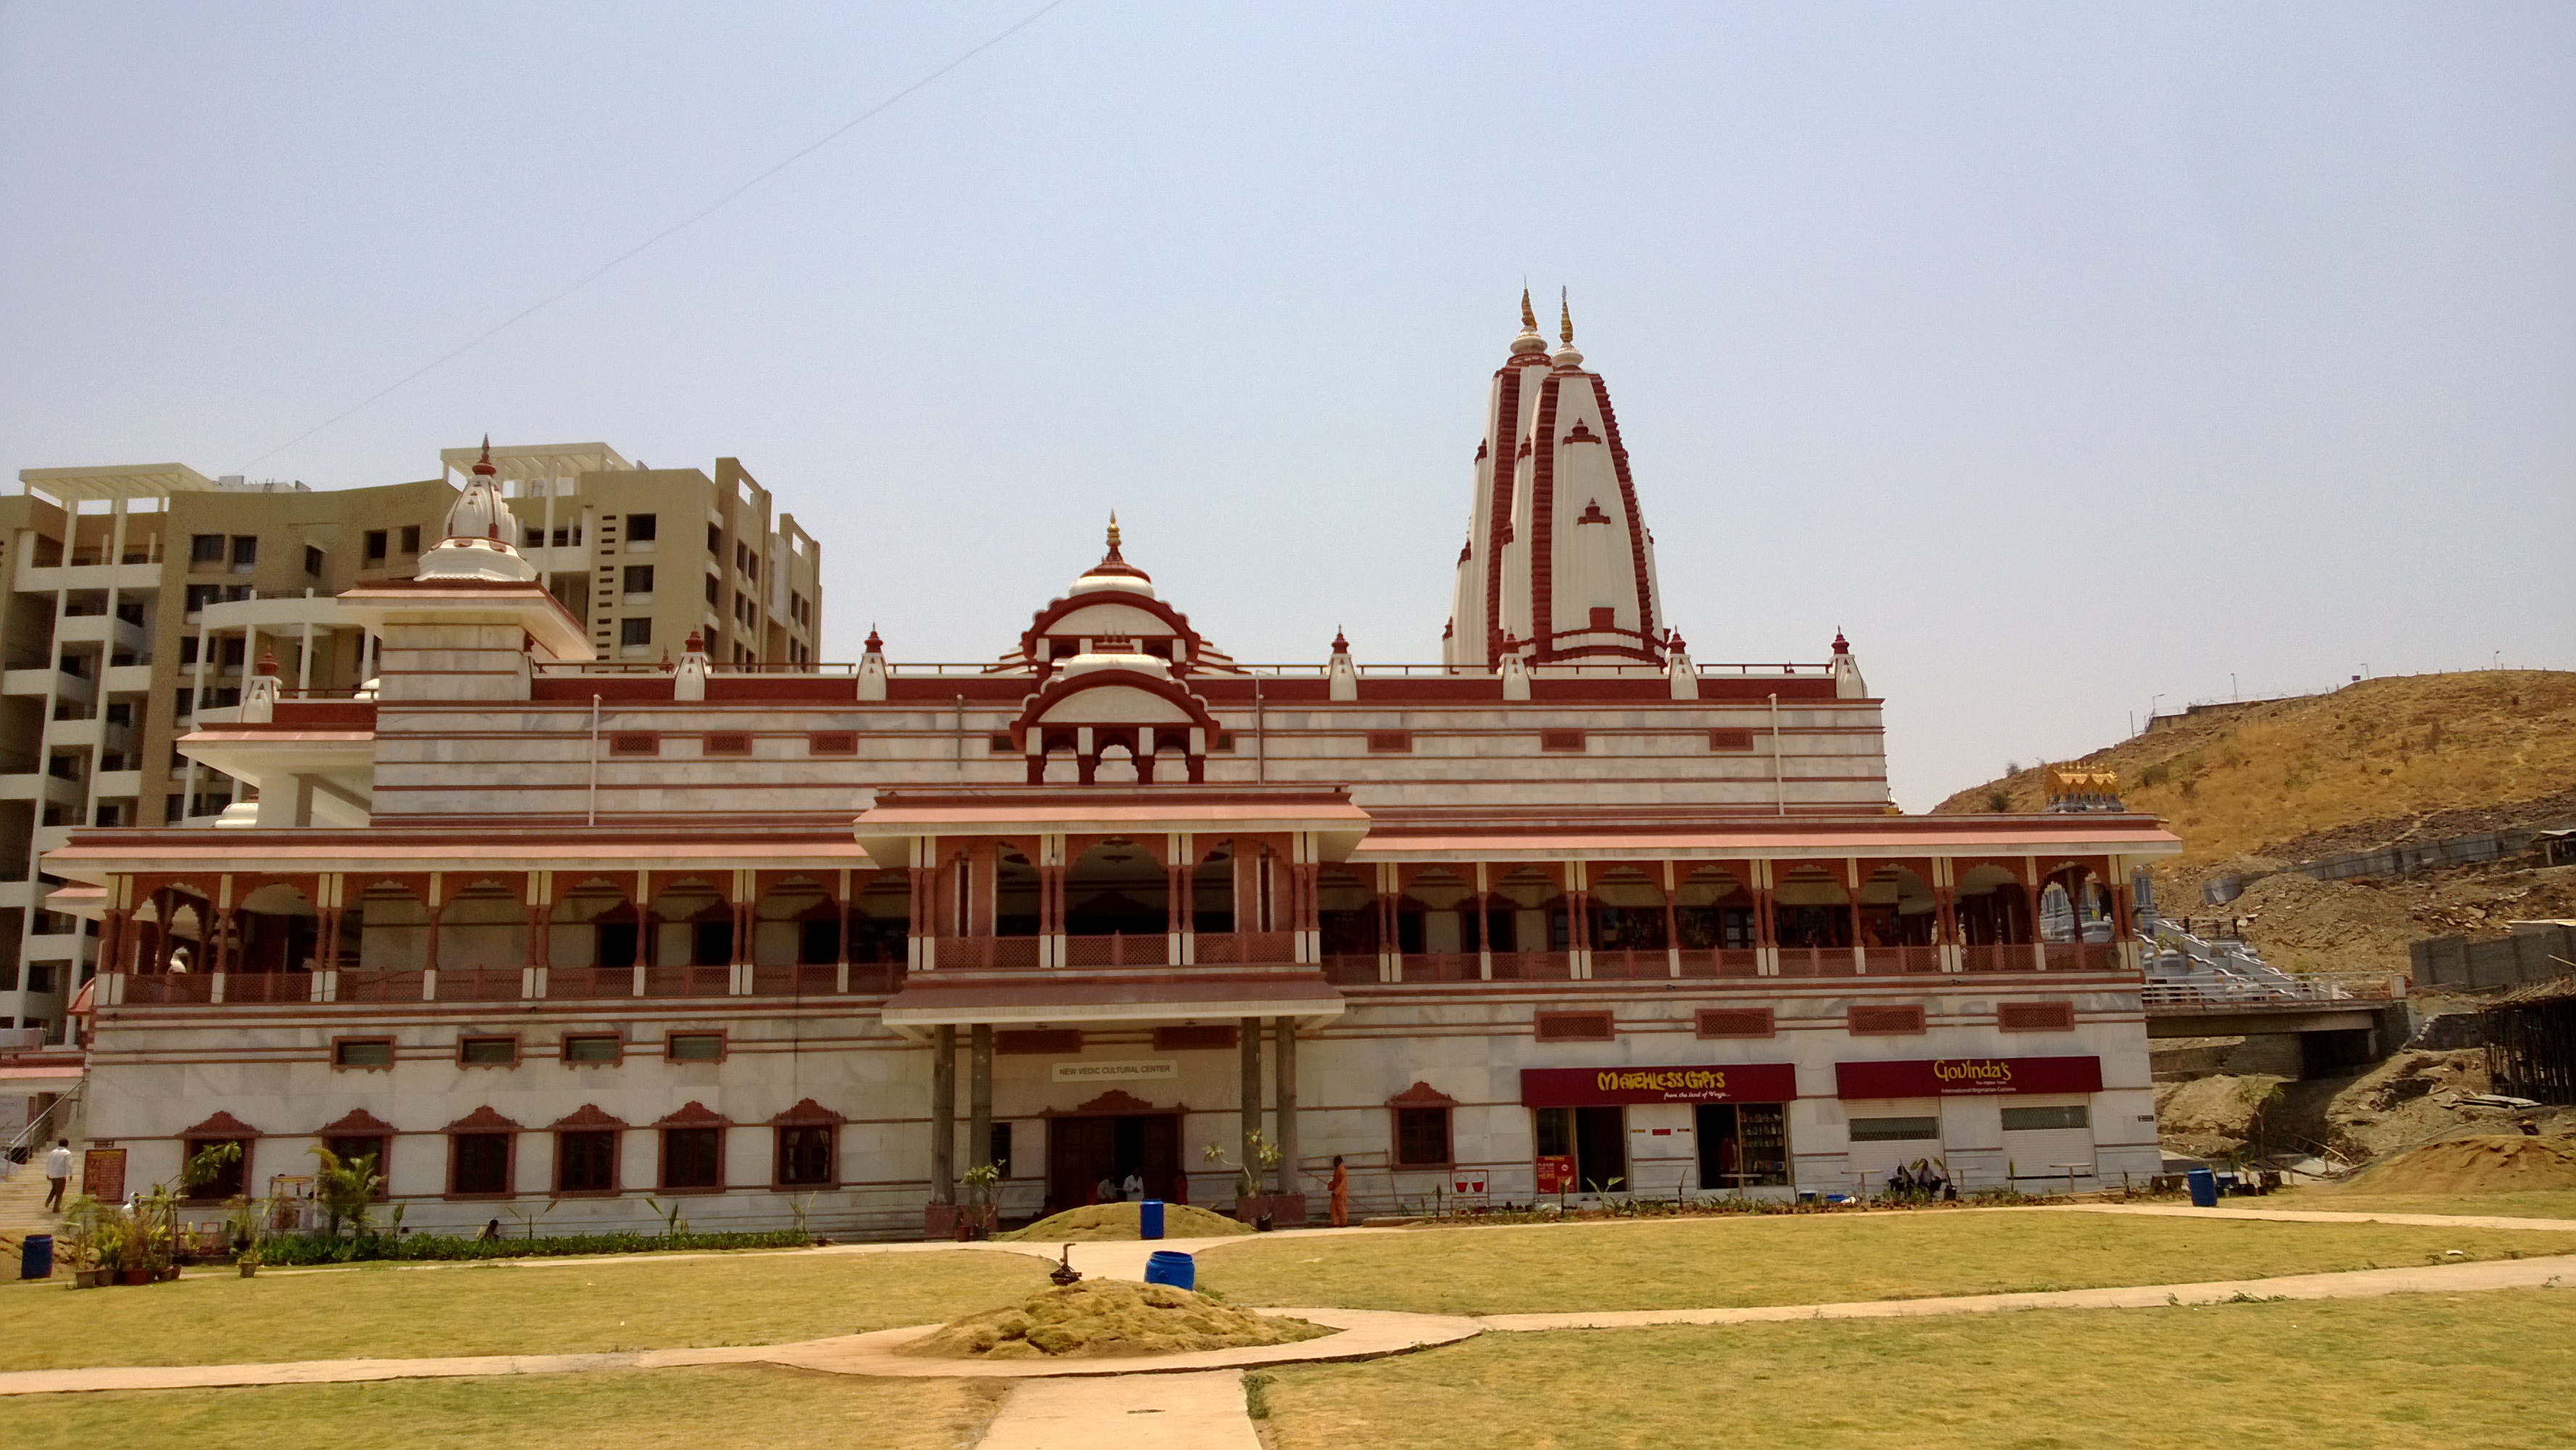 ISKCON temple at Pune - Exterior view